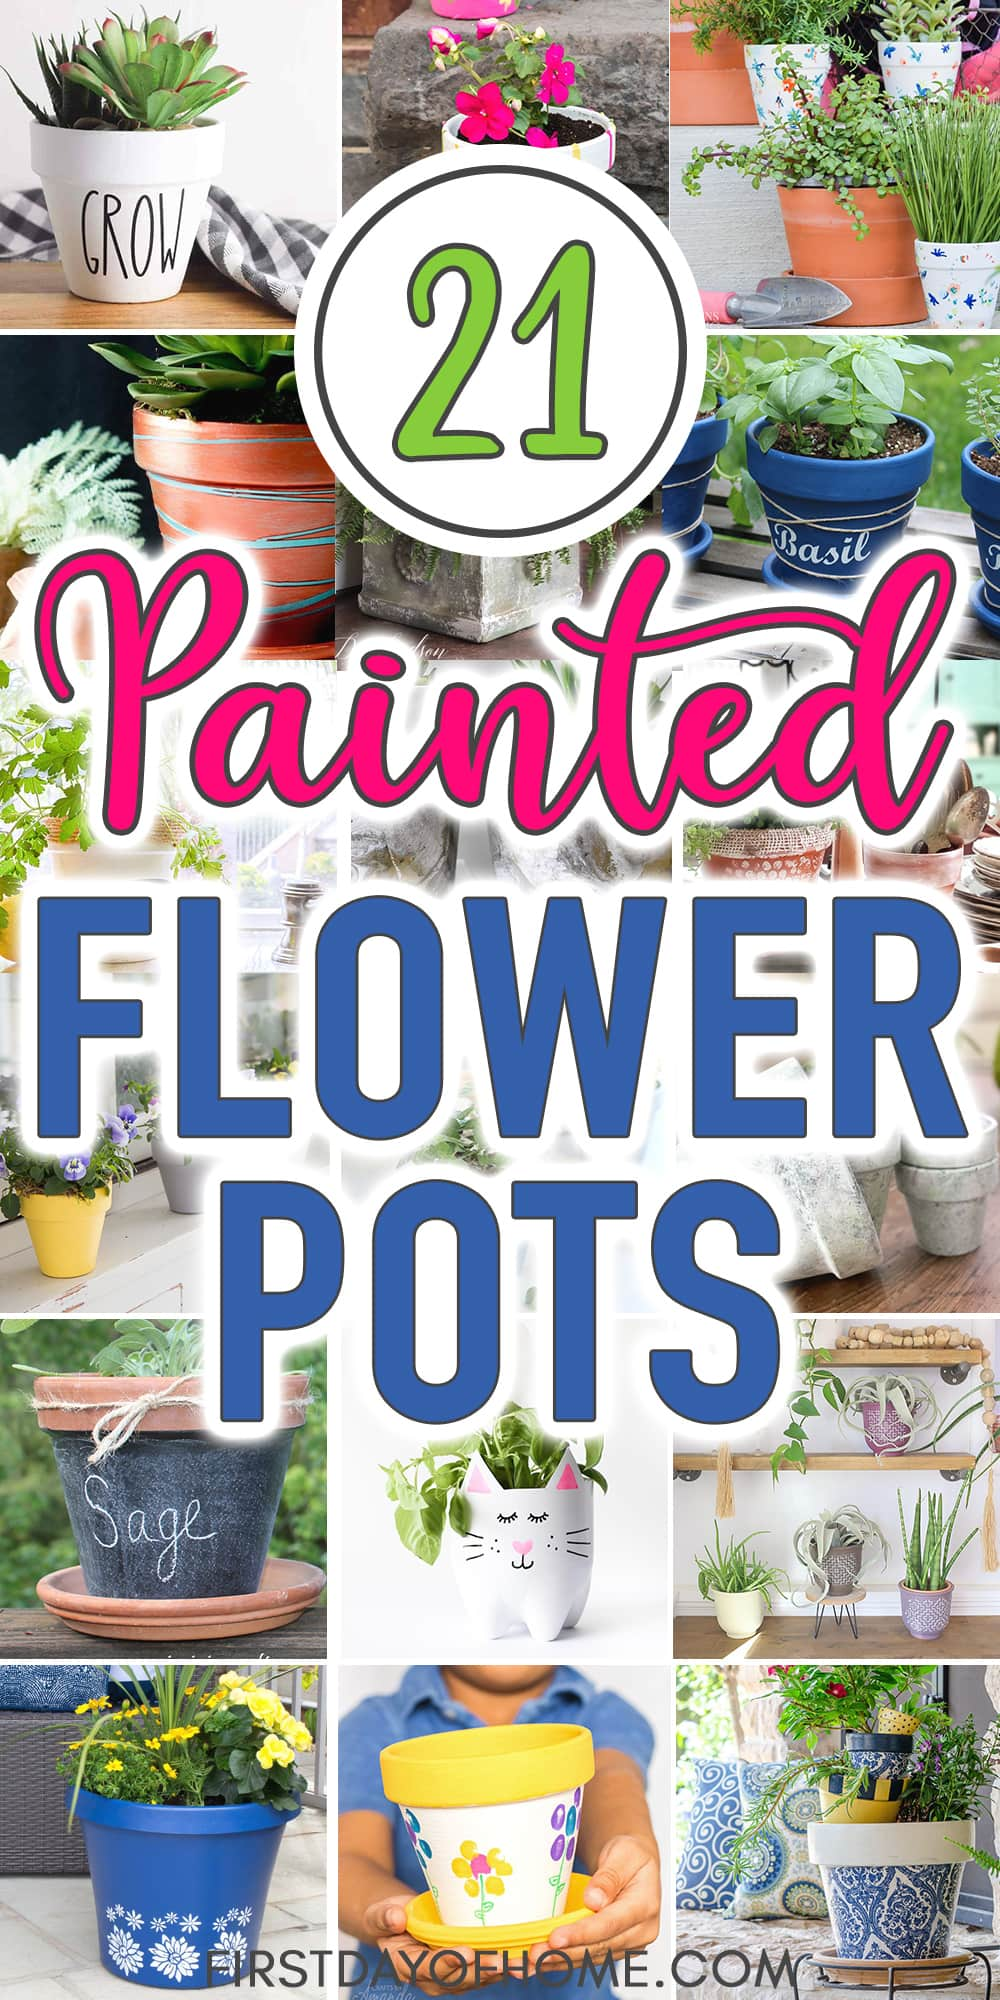 """Decorative painted flower pots with text overlay reading """"21 Painted Flower Pots"""""""